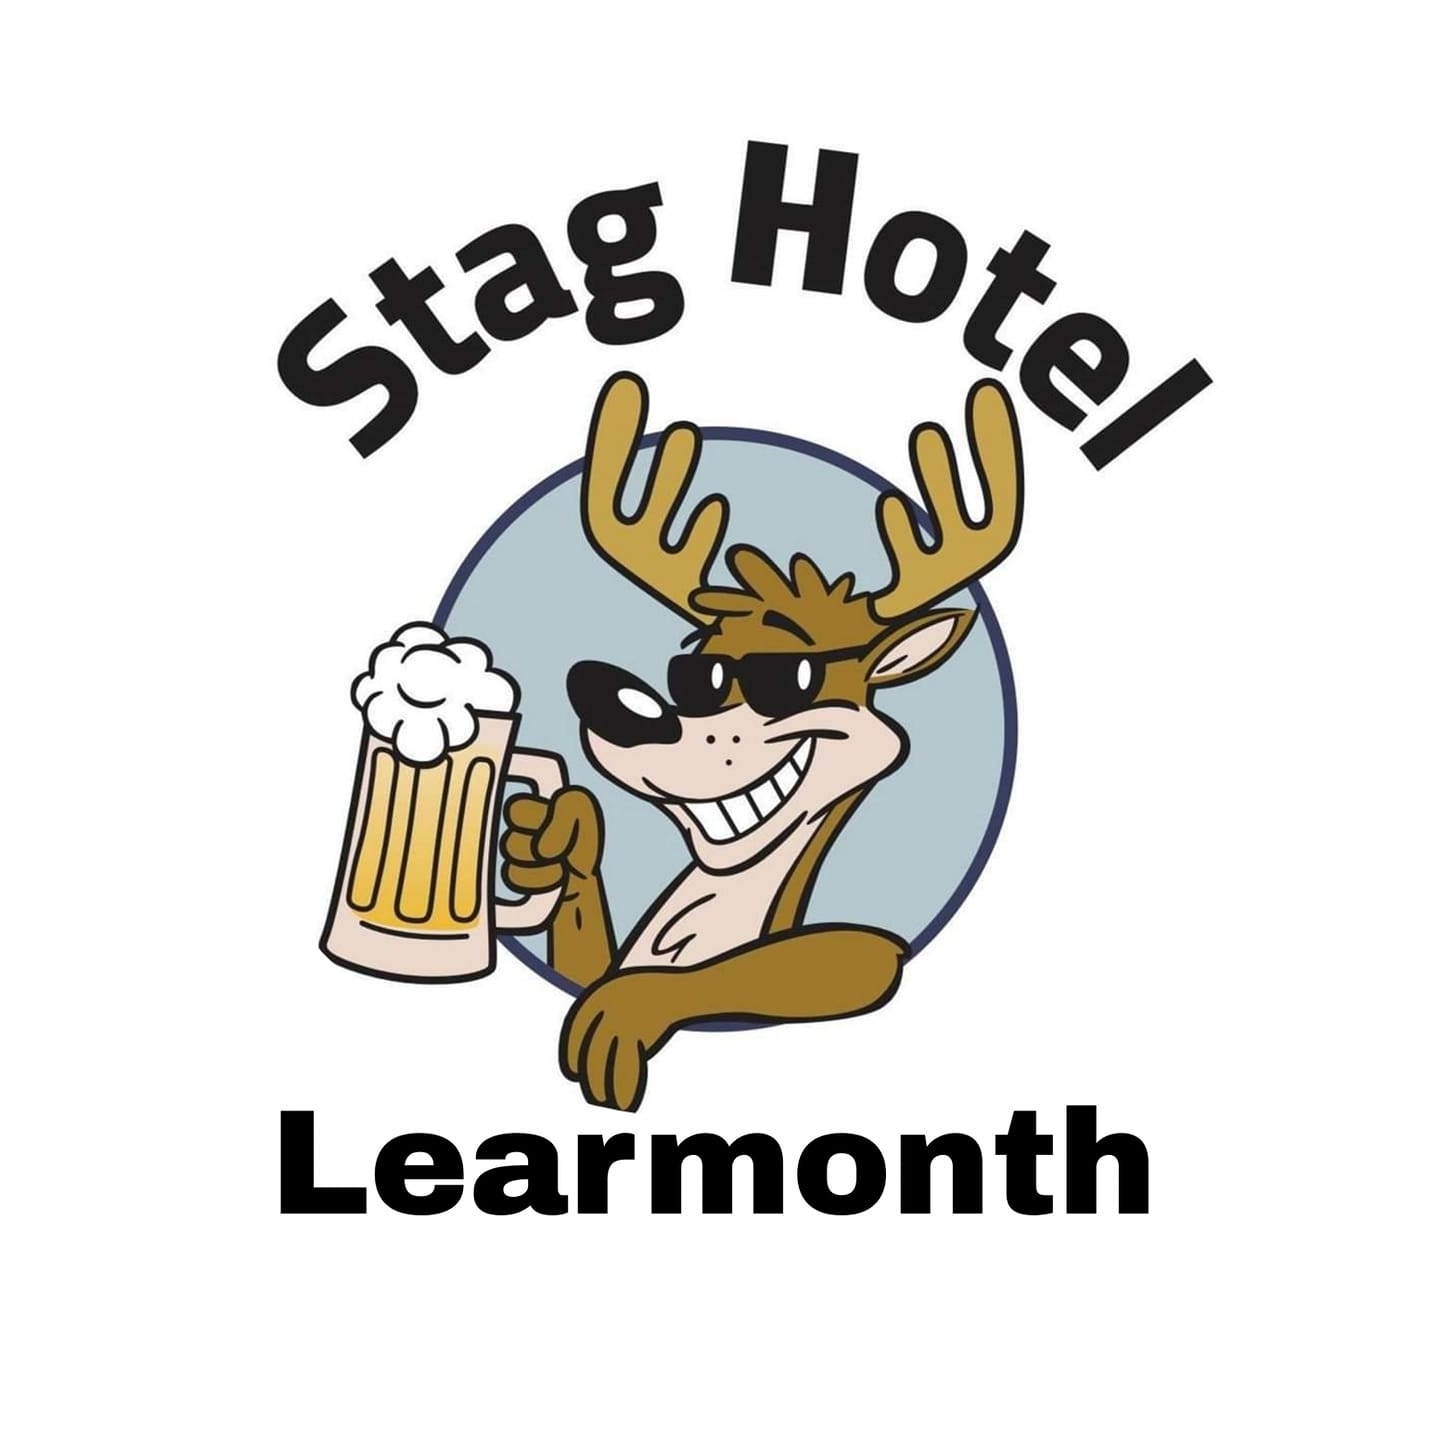 Stag Hotel Learmonth | restaurant | 428-440 High St, Learmonth VIC 3352, Australia | 0353432224 OR +61 3 5343 2224